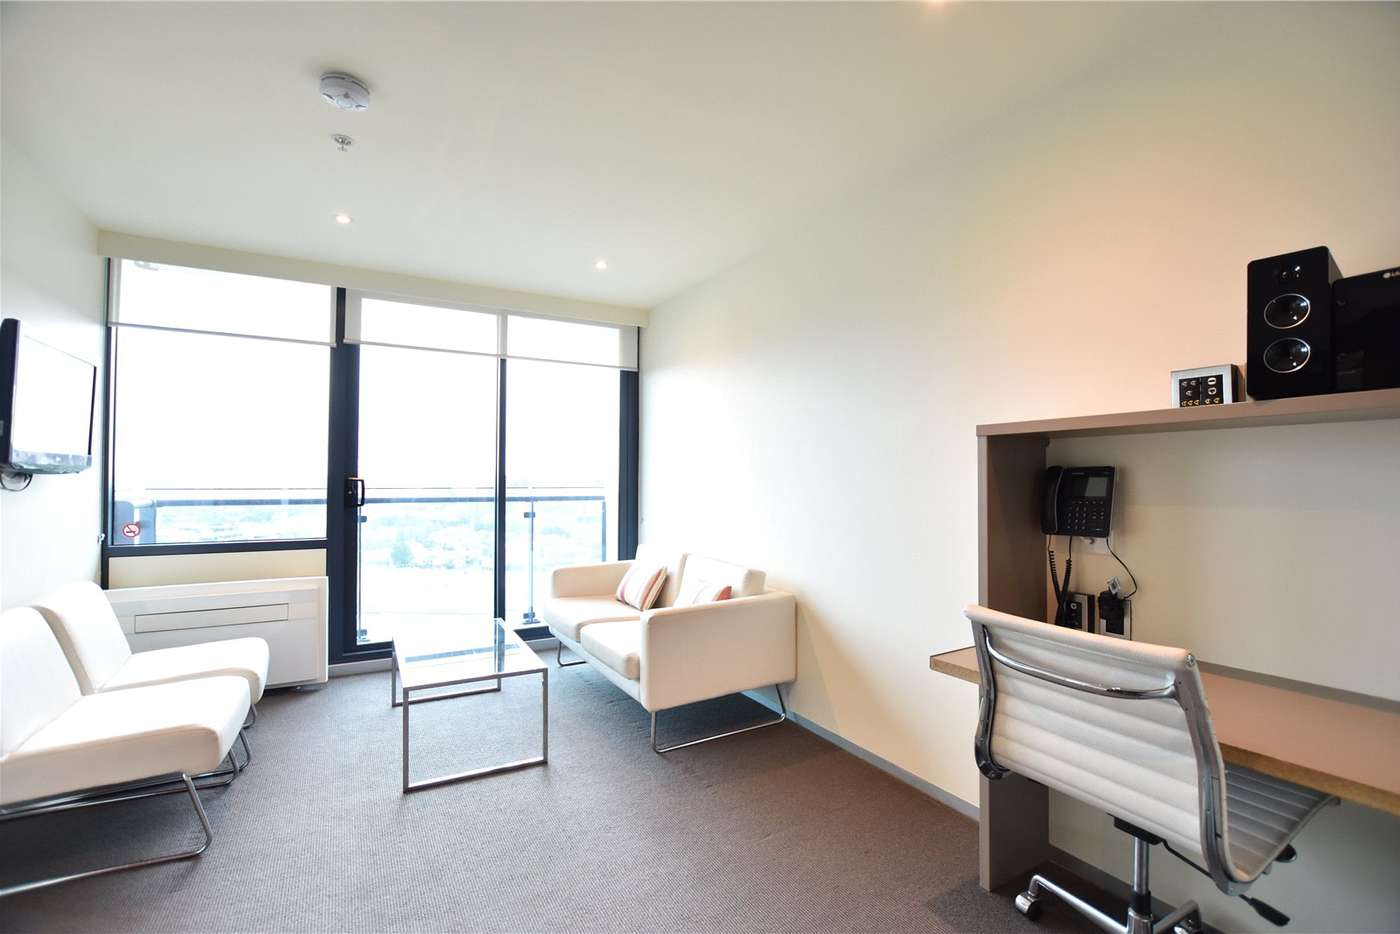 Main view of Homely apartment listing, 2703/181 ABeckett Street, Melbourne VIC 3000